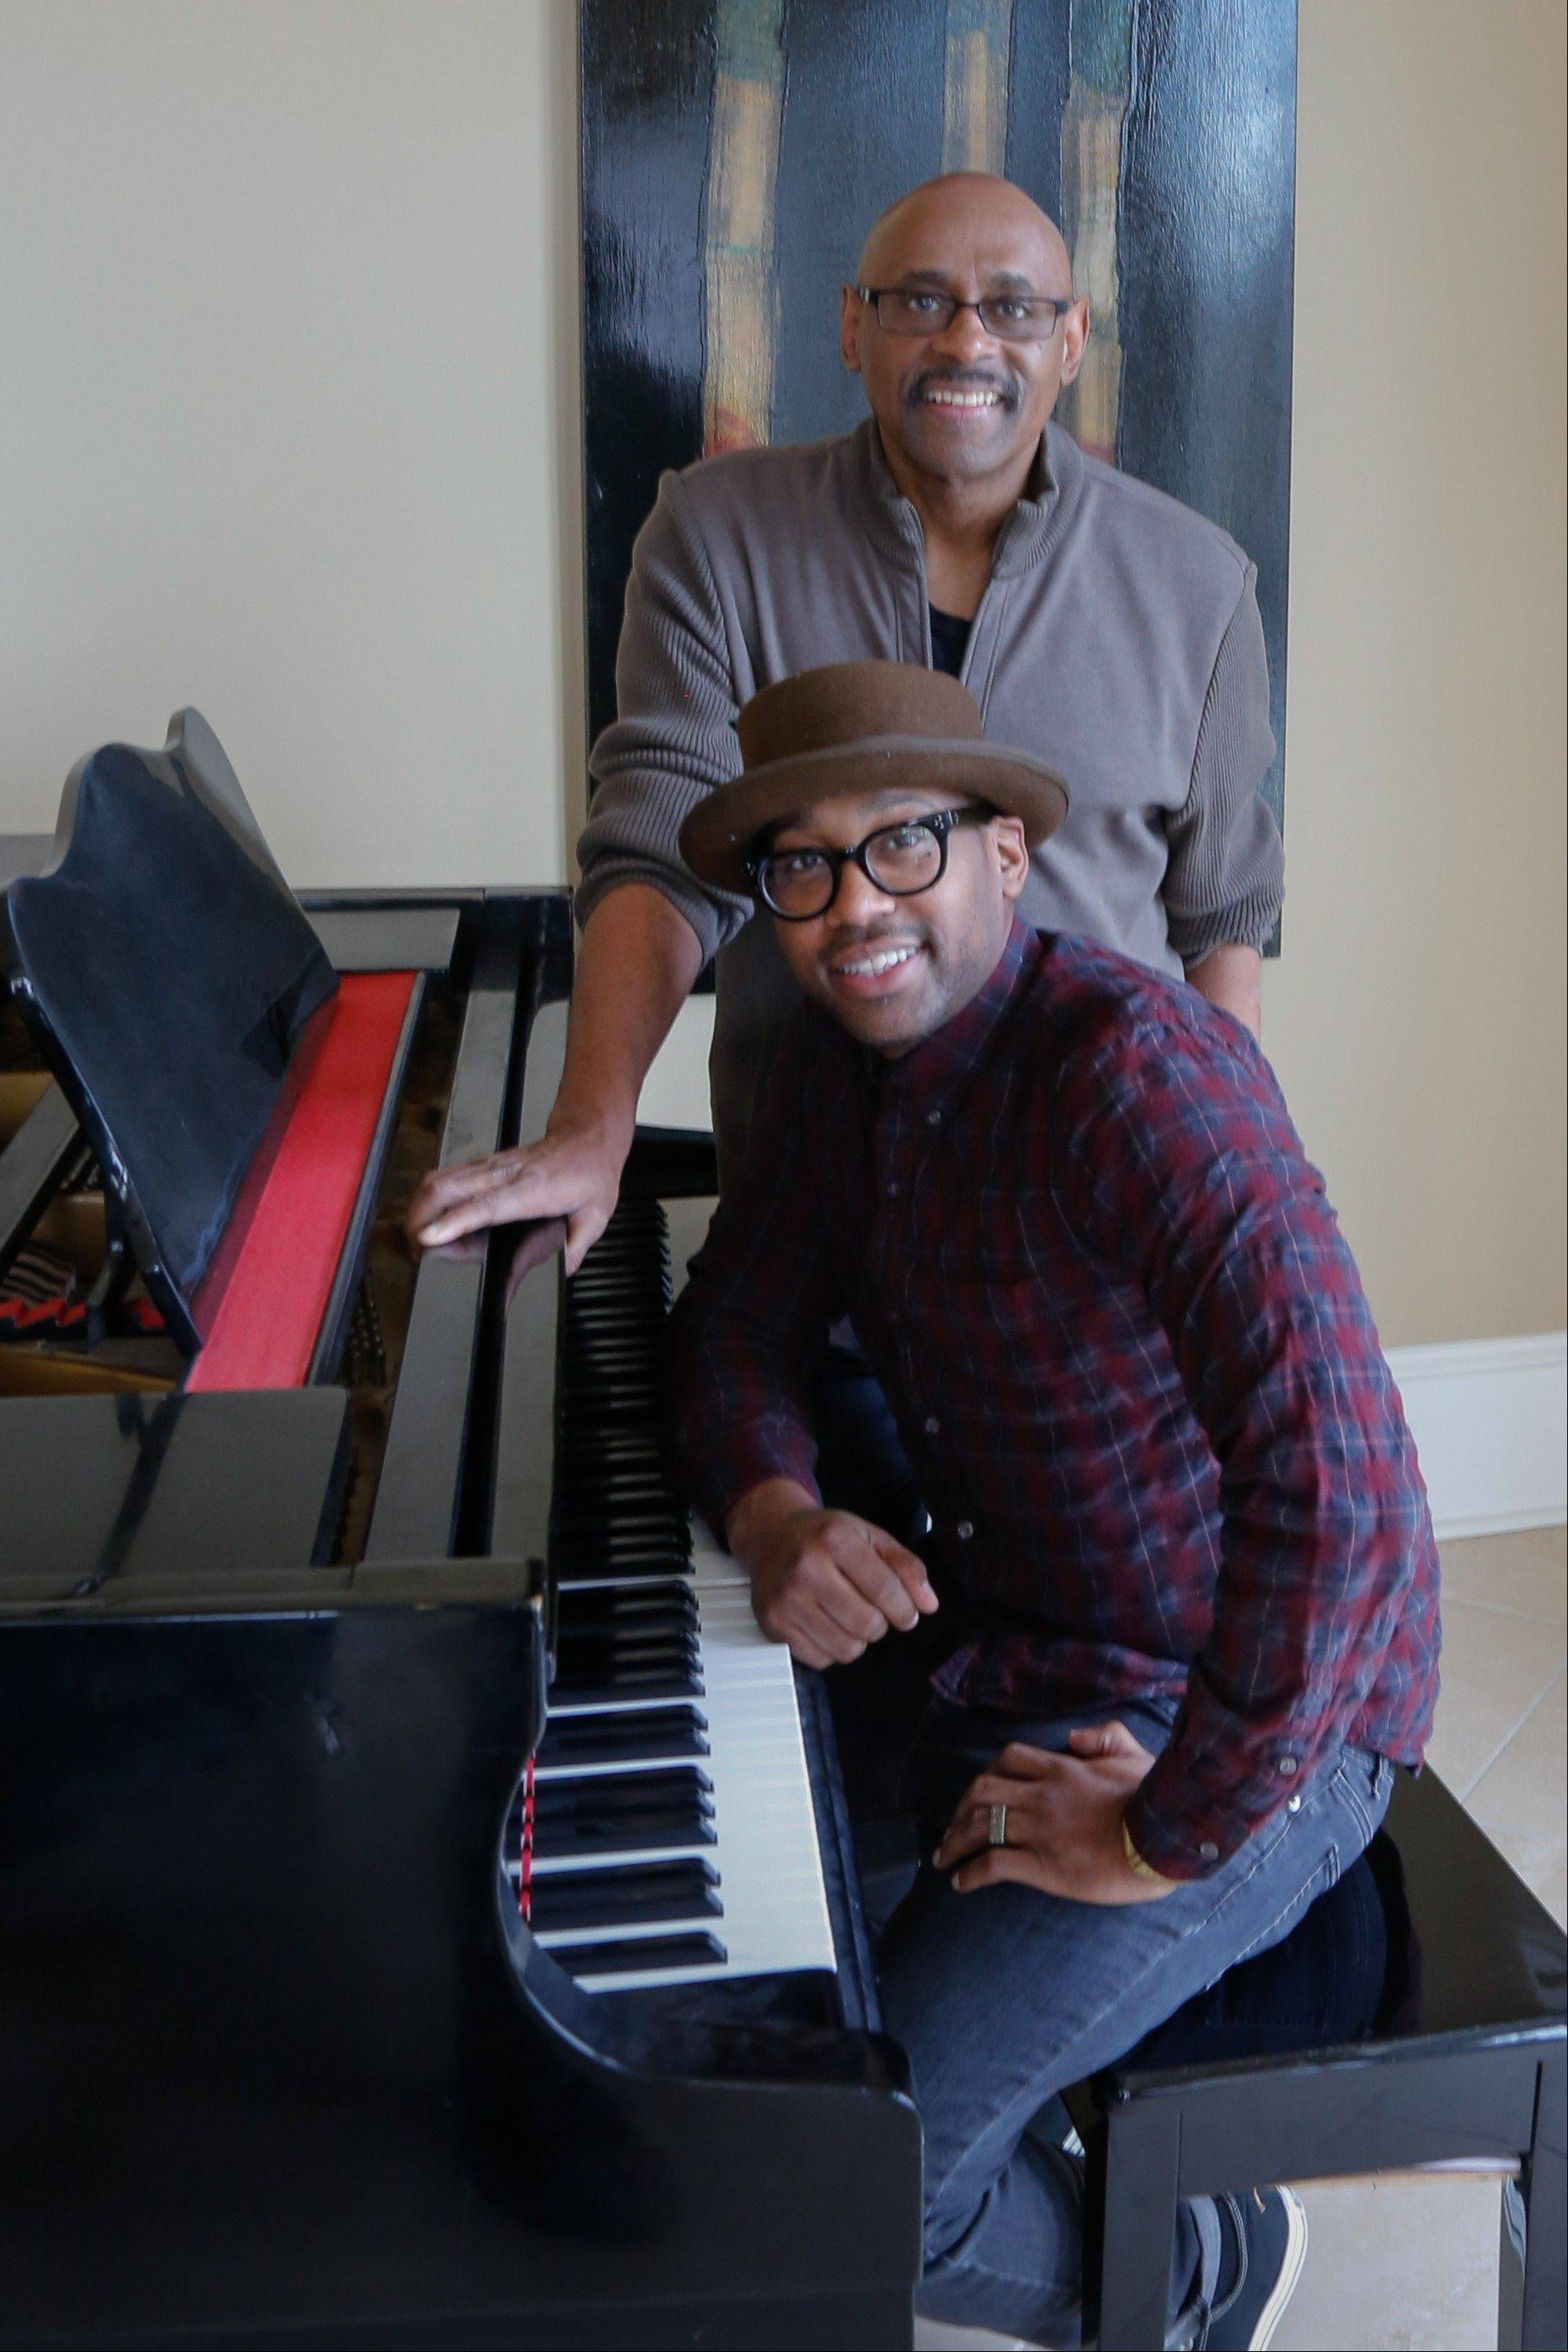 Bishop Paul Morton, background, and his son PJ Morton are nominated for best gospel album for �Best Days Yet,� the elder Morton�s album where PJ wrote and produced four songs. The Mortons are the first to accomplish the feat since Bob and Jakob Dylan did so in 1998.